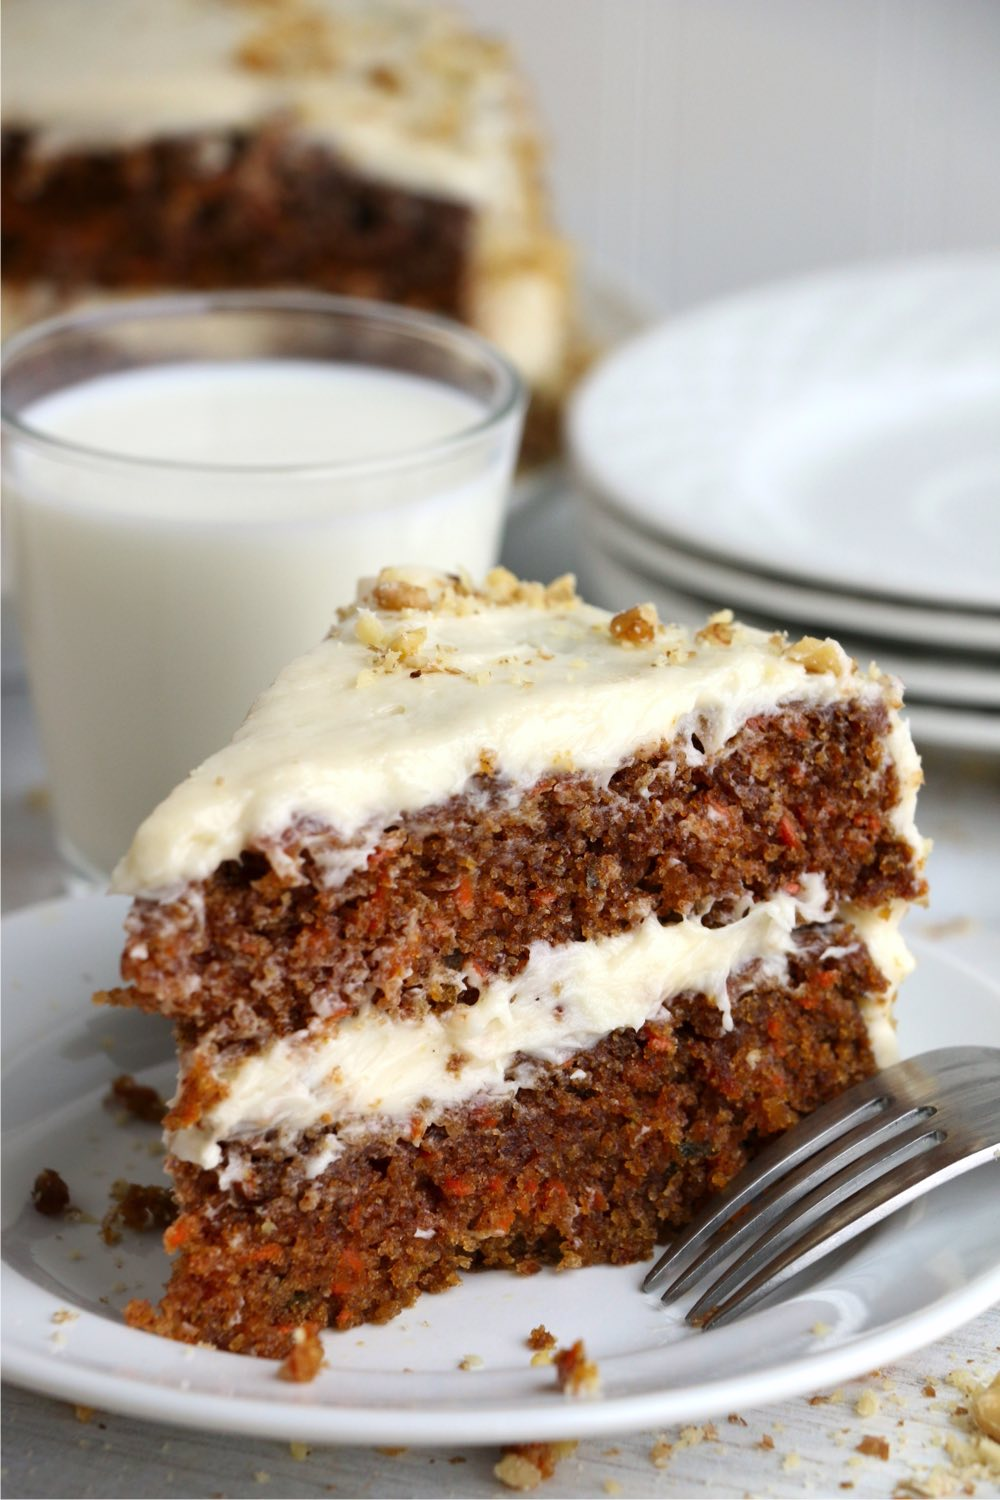 Piece of layered carrot cake on plate with glass of milk in background